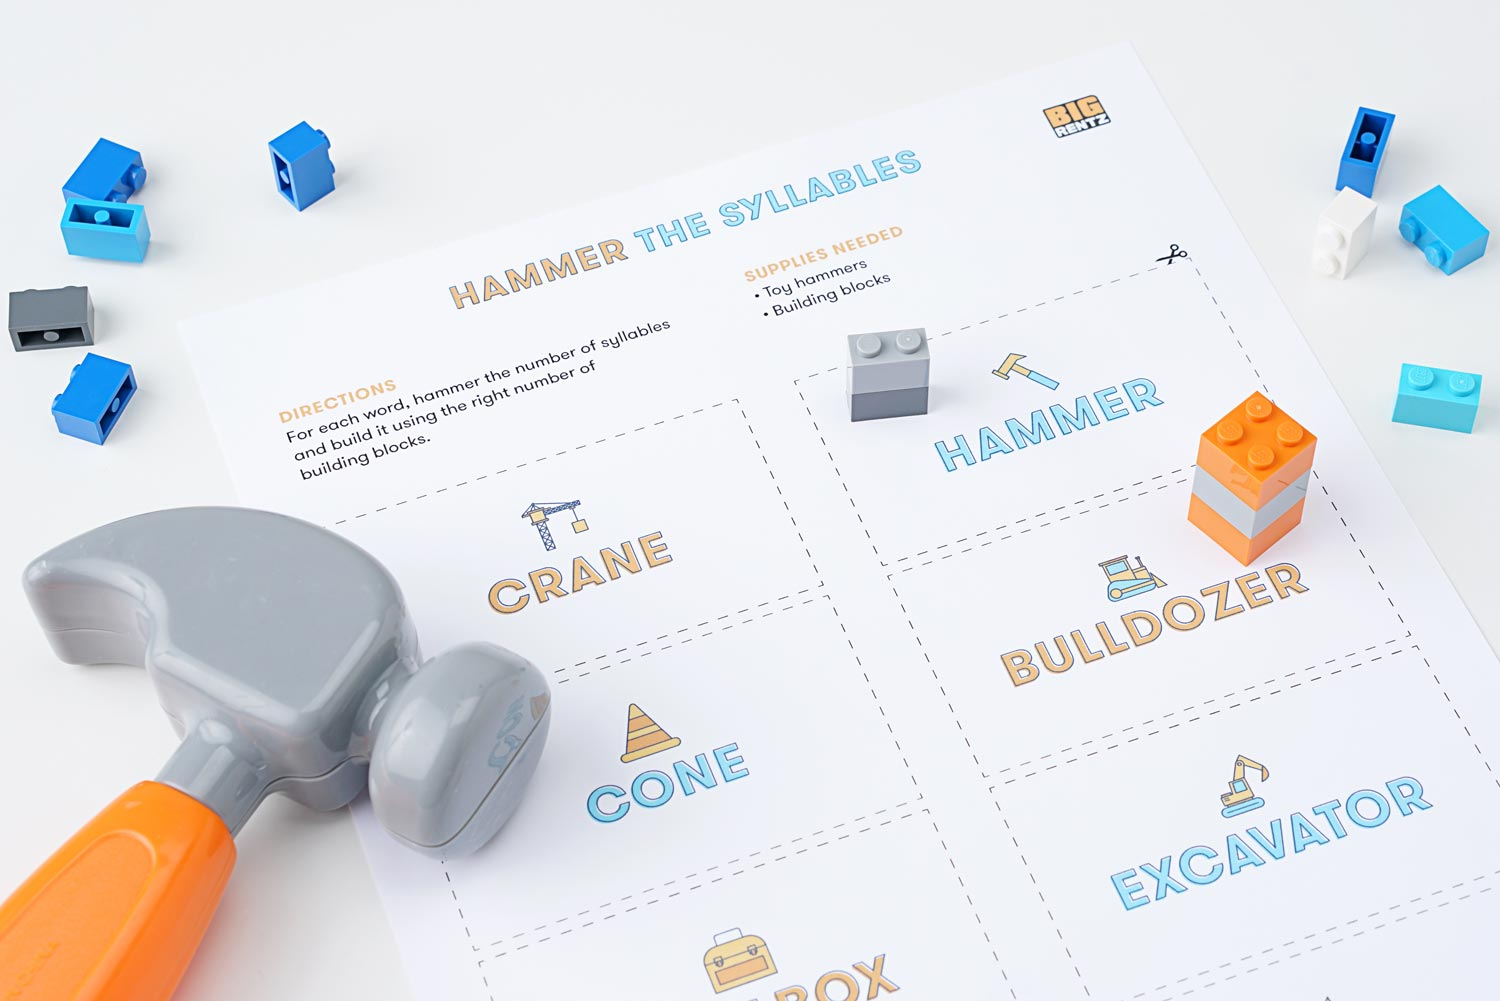 Language game featuring words, a toy hammer, and building blocks